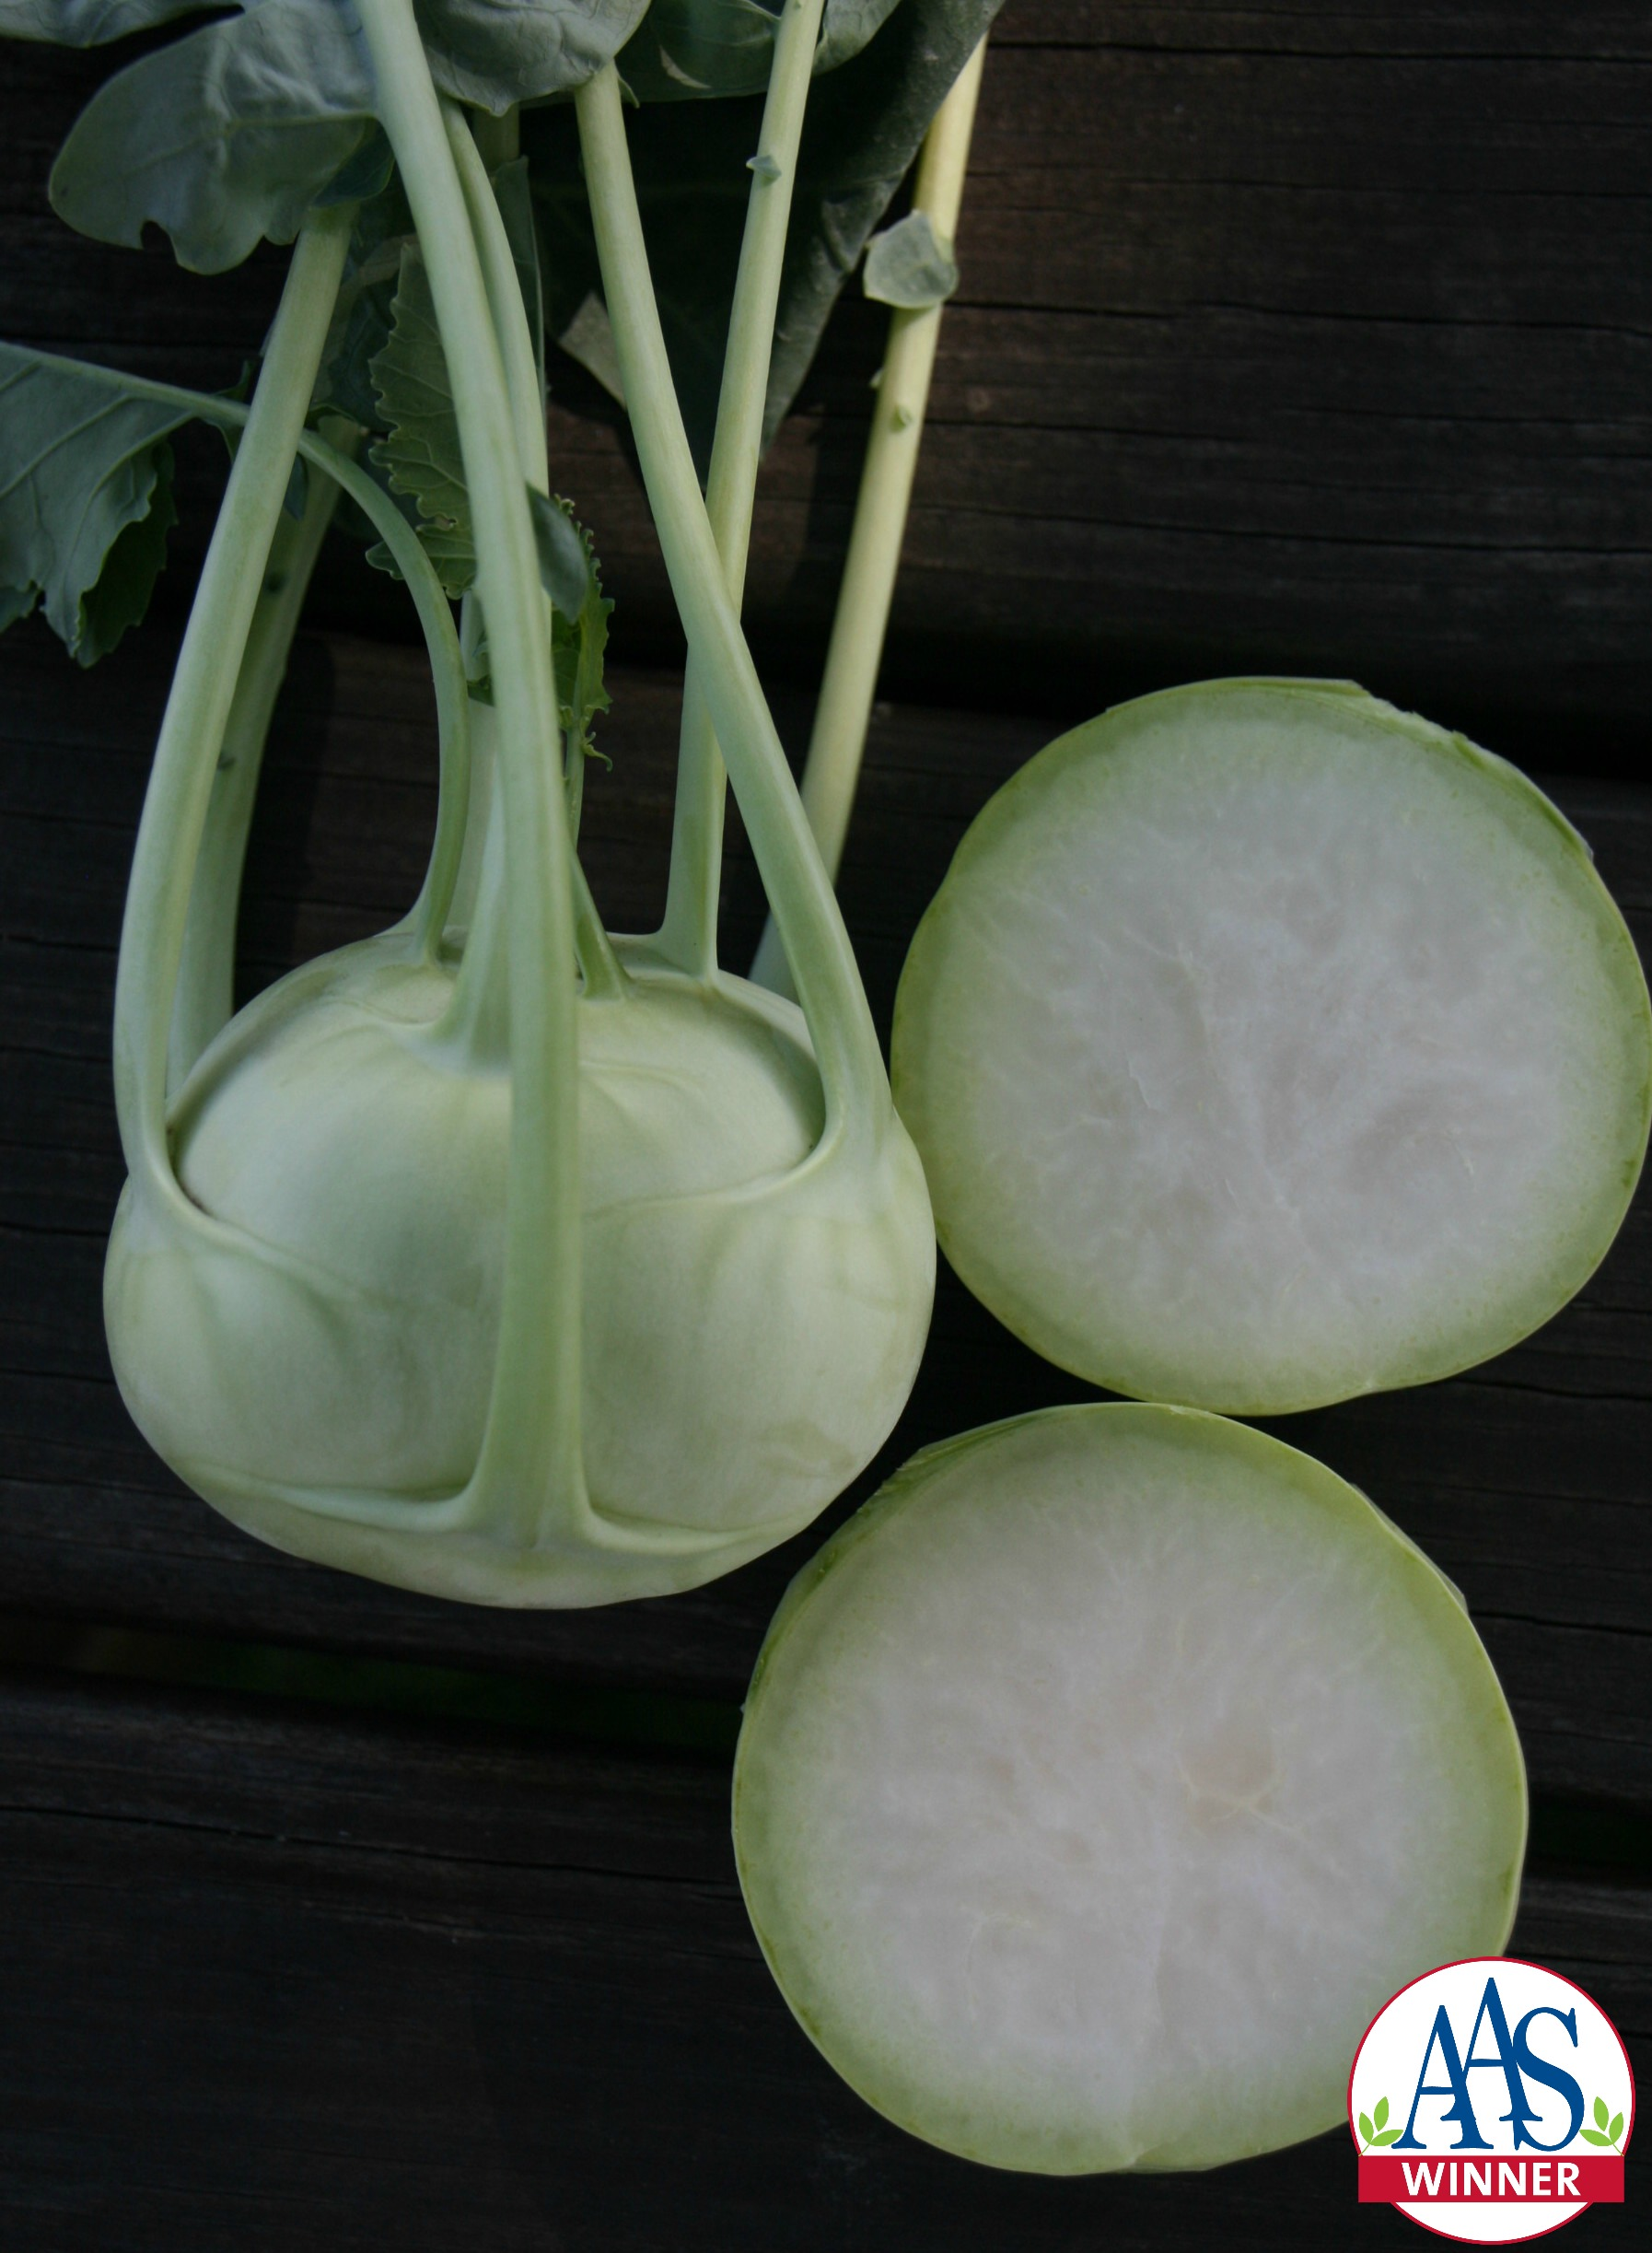 https://extension.illinois.edu/photolib/lib2211/Kohlrabi%5FKonanF1%2DAAS2016%2Dprimary.jpg